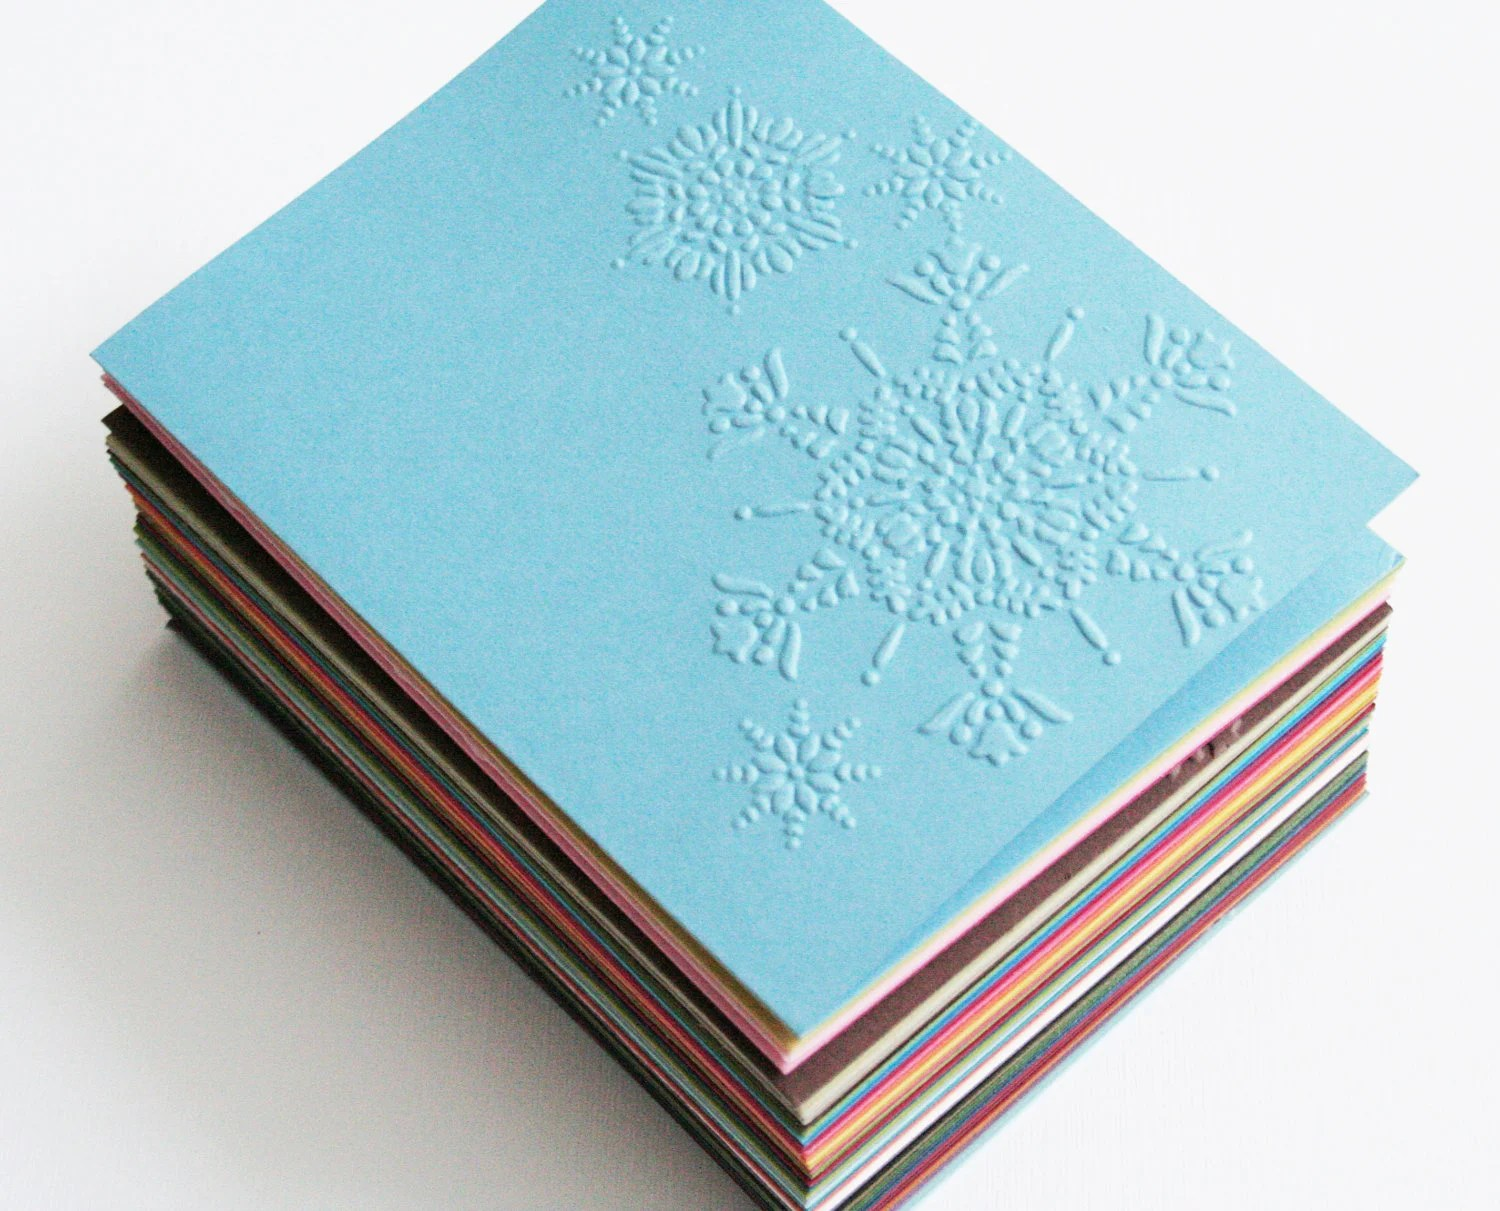 Blank cards with embossed Snowflakes - 50 color choices - diecut4you